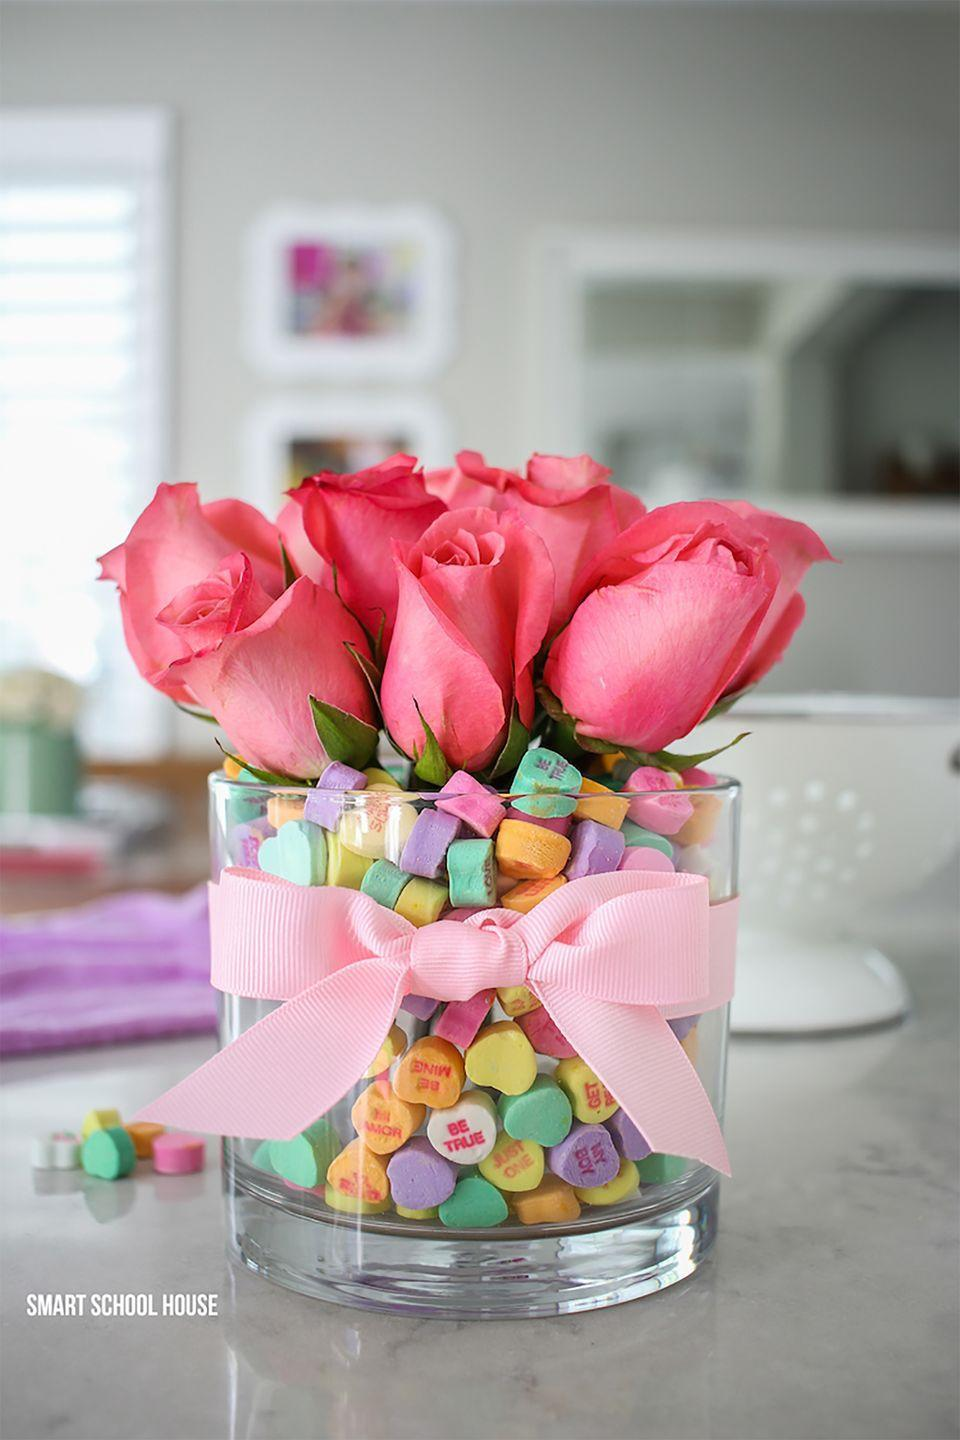 """<p>A vase of water is actually hidden underneath a pile of conversational hearts.</p><p><strong>Get the tutorial at <a href=""""https://www.smartschoolhouse.com/diy-crafts/candy-heart-valentine-bouquet"""" rel=""""nofollow noopener"""" target=""""_blank"""" data-ylk=""""slk:Smart School House"""" class=""""link rapid-noclick-resp"""">Smart School House</a>.</strong></p><p><strong><a class=""""link rapid-noclick-resp"""" href=""""https://www.amazon.com/b?ie=UTF8&node=16091540011&tag=syn-yahoo-20&ascsubtag=%5Bartid%7C10050.g.2971%5Bsrc%7Cyahoo-us"""" rel=""""nofollow noopener"""" target=""""_blank"""" data-ylk=""""slk:SHOP GLASS VASES"""">SHOP GLASS VASES</a><br></strong></p>"""